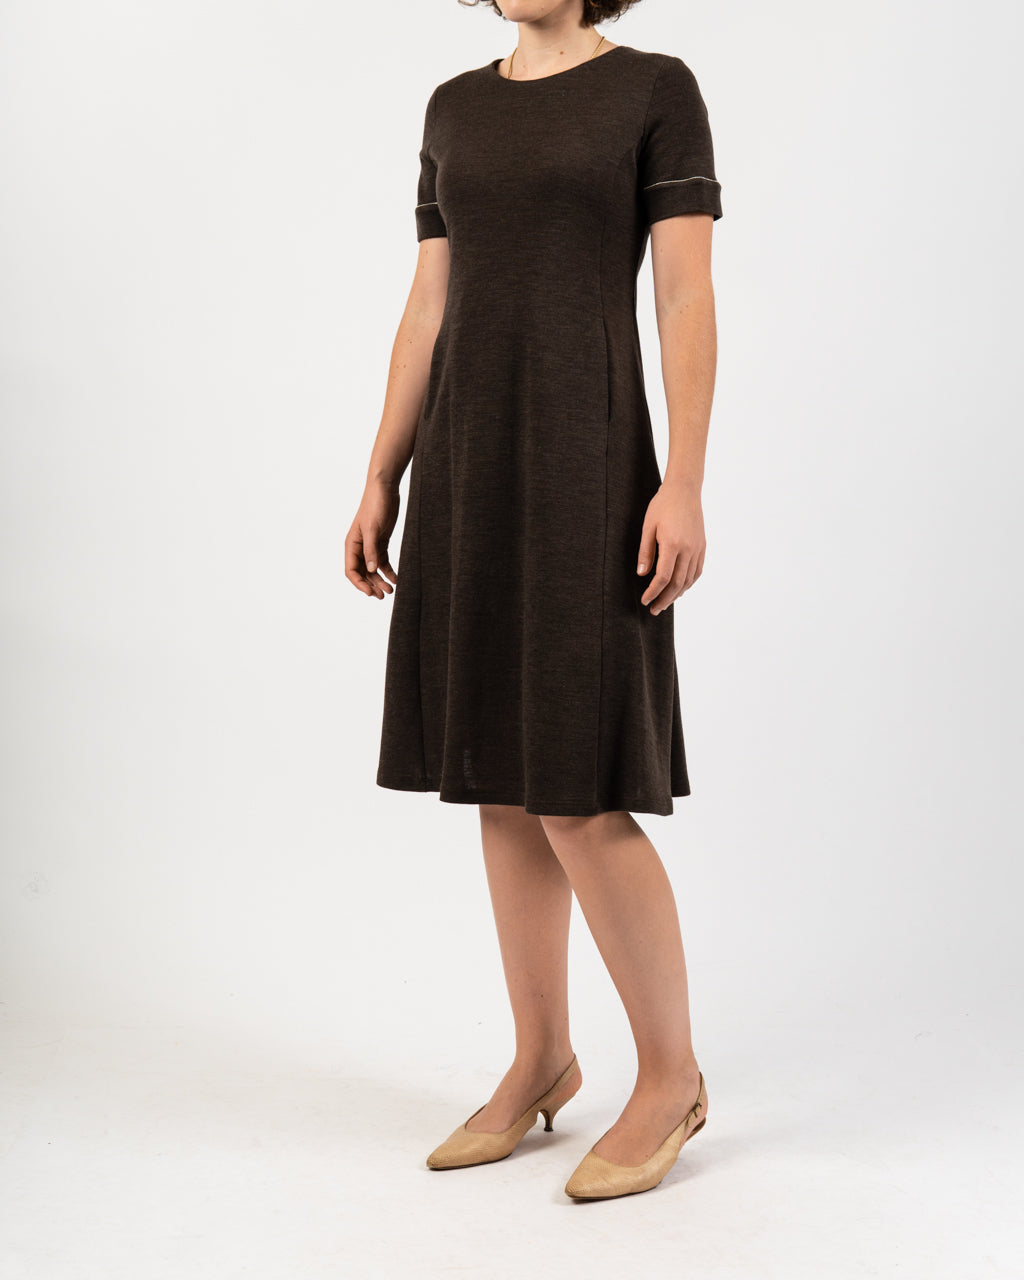 Brown Short Sleeve Swing Dress